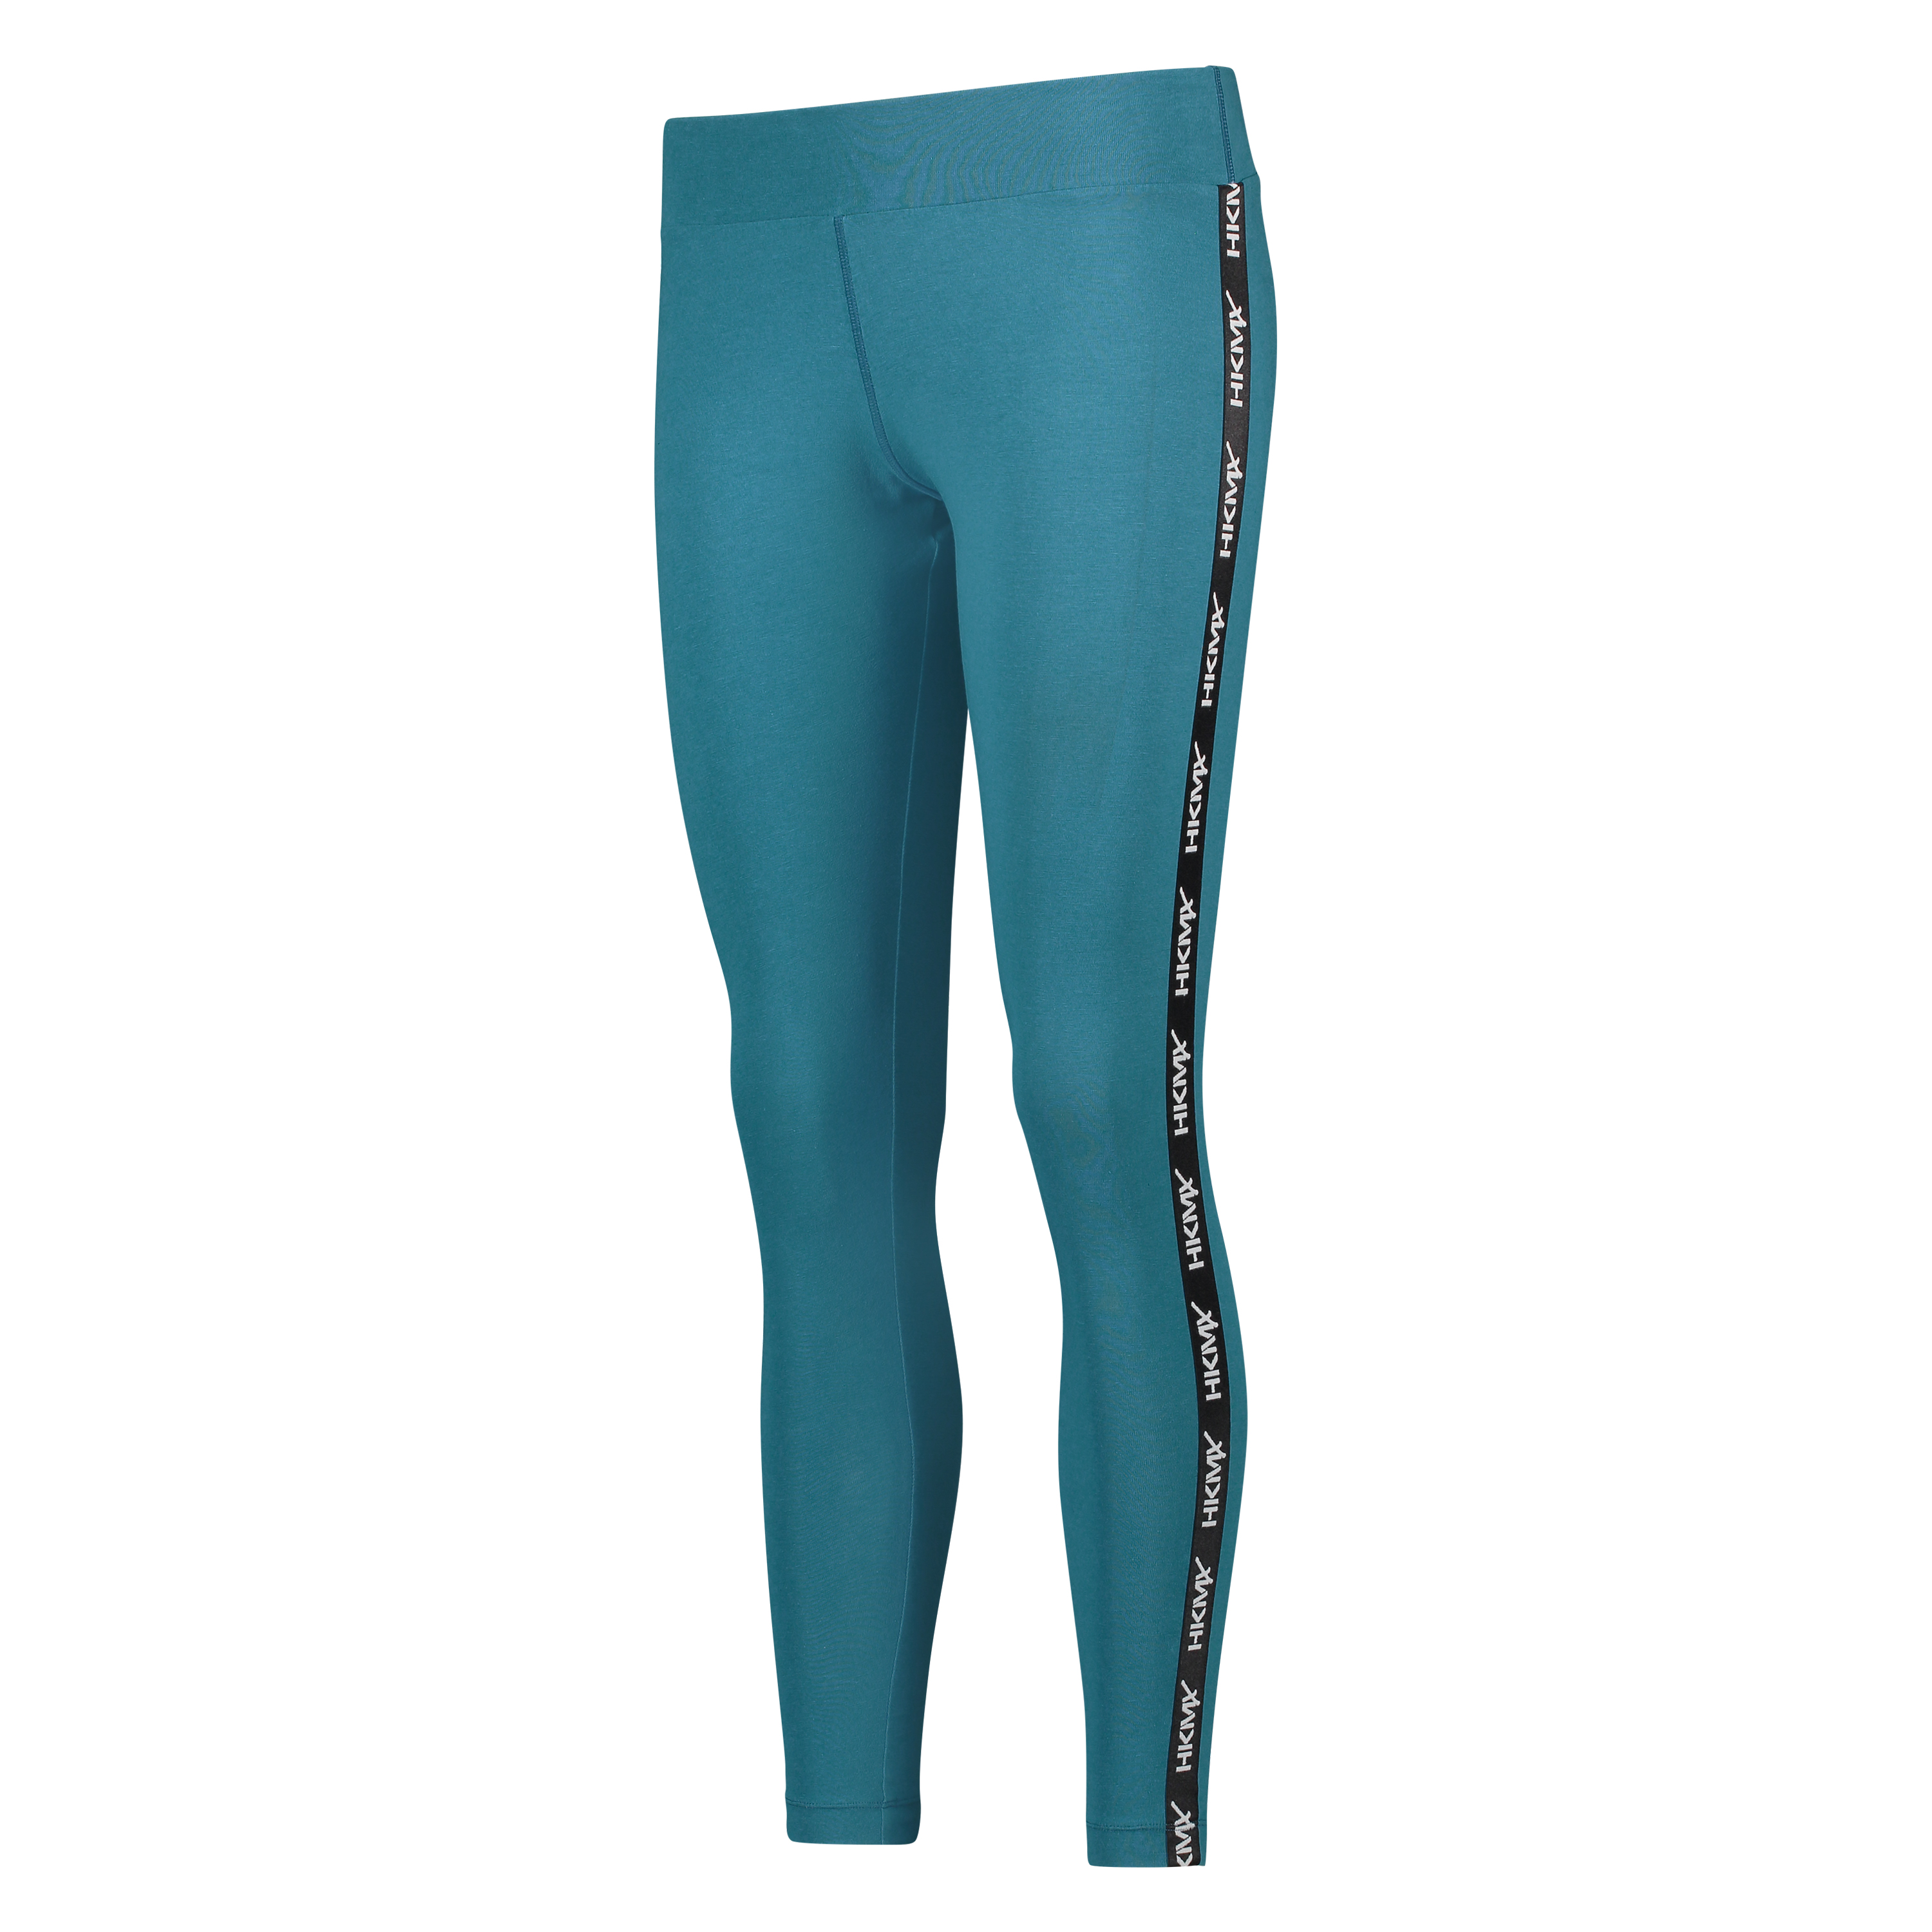 HKMX Sportlegging Branded Tape, Blauw, main